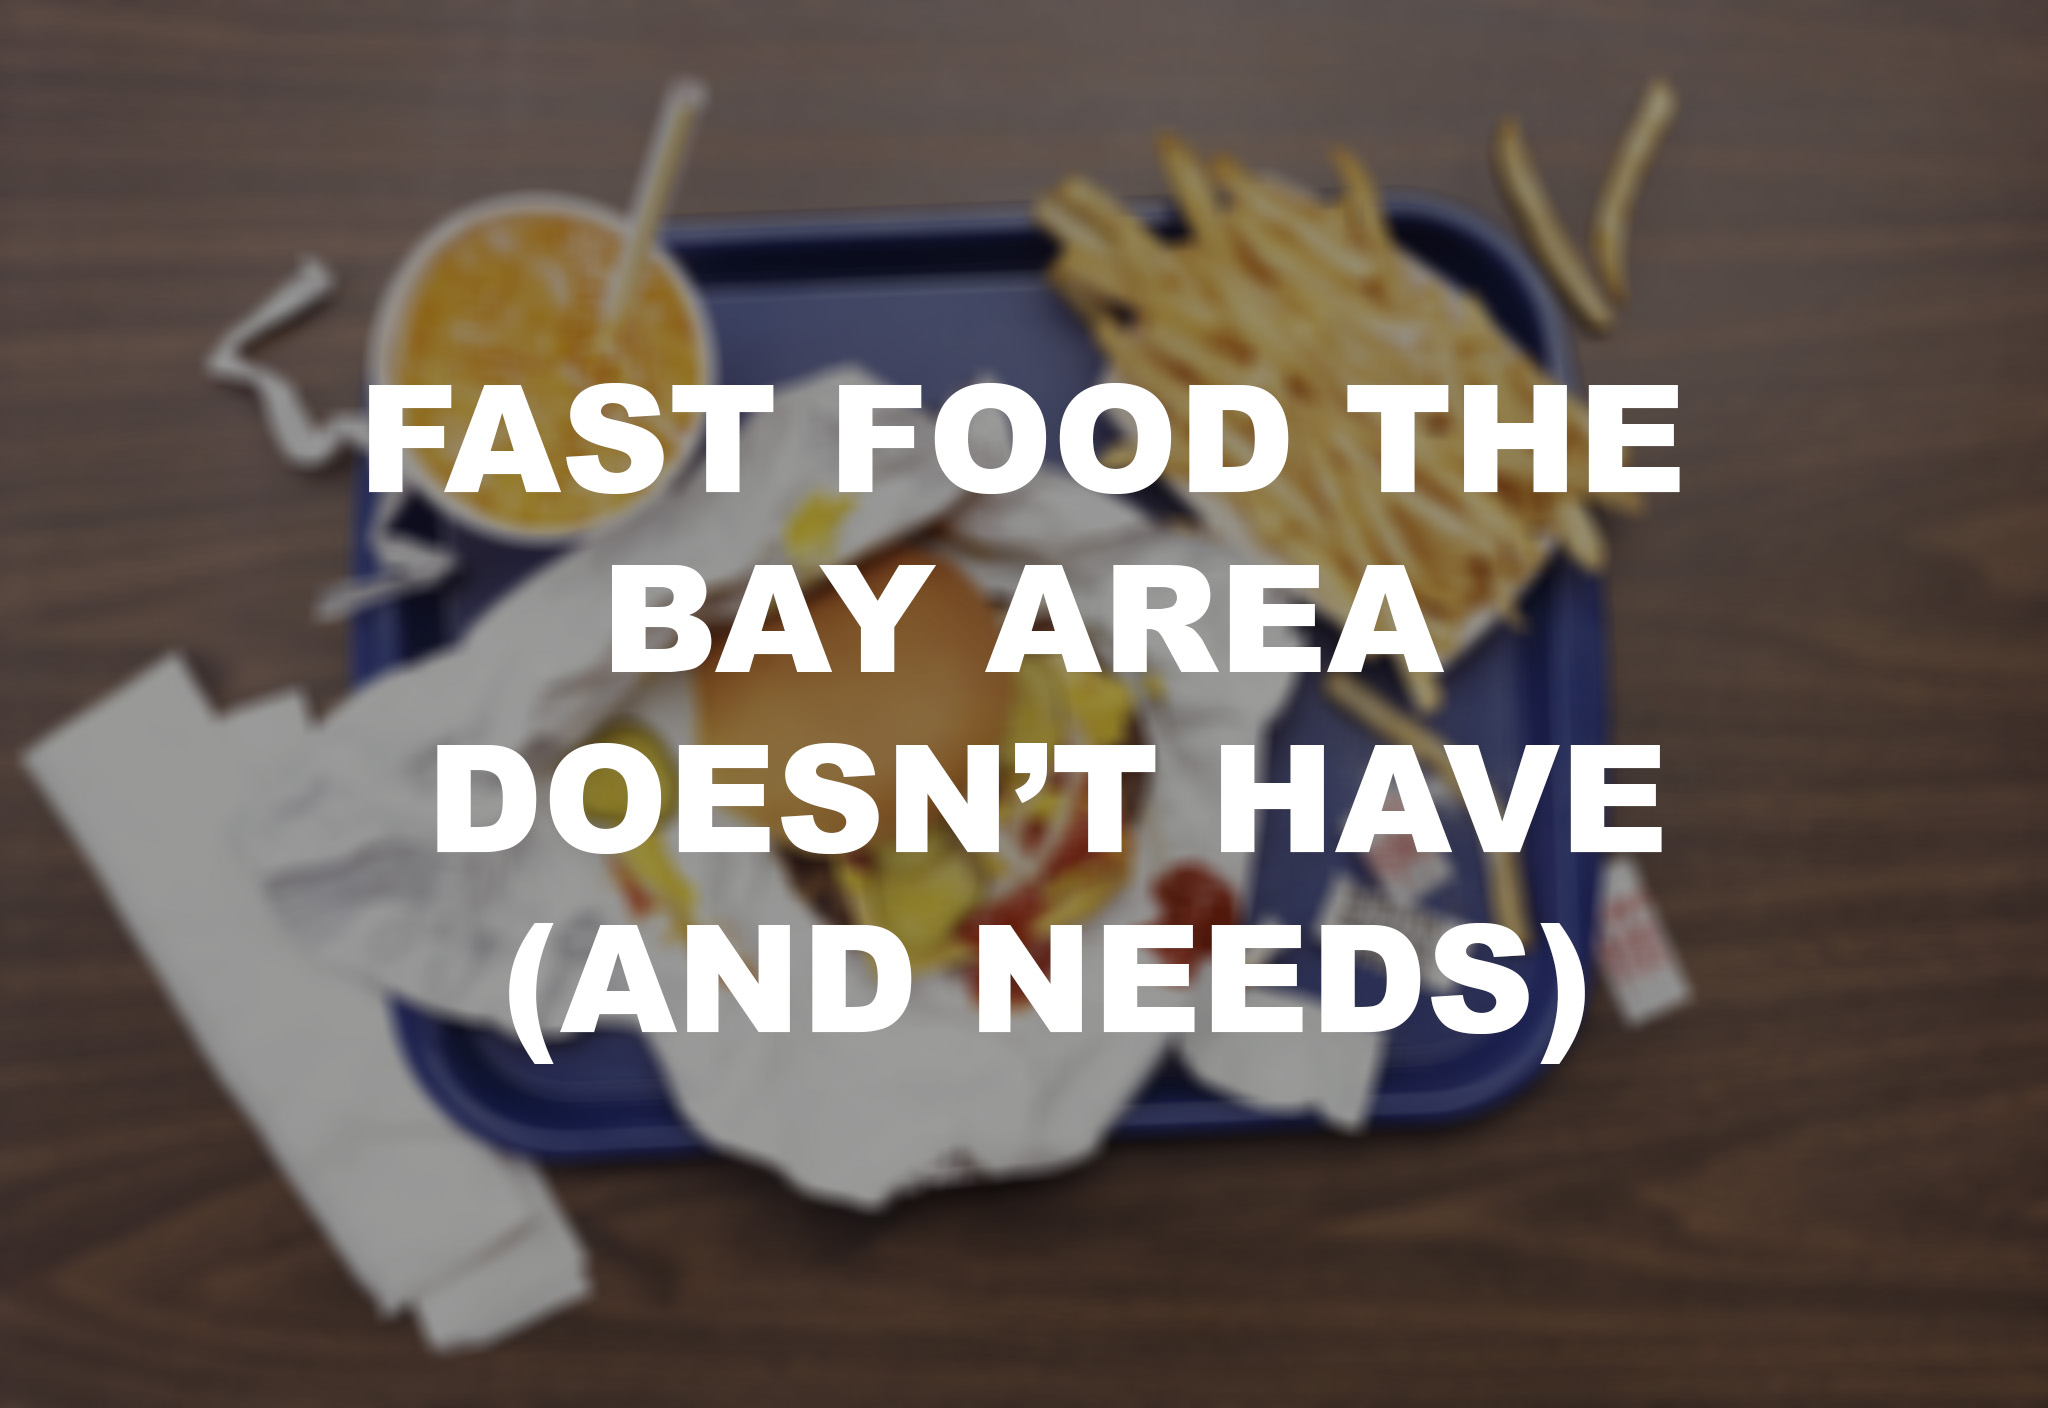 New Fast Food Item Announcements